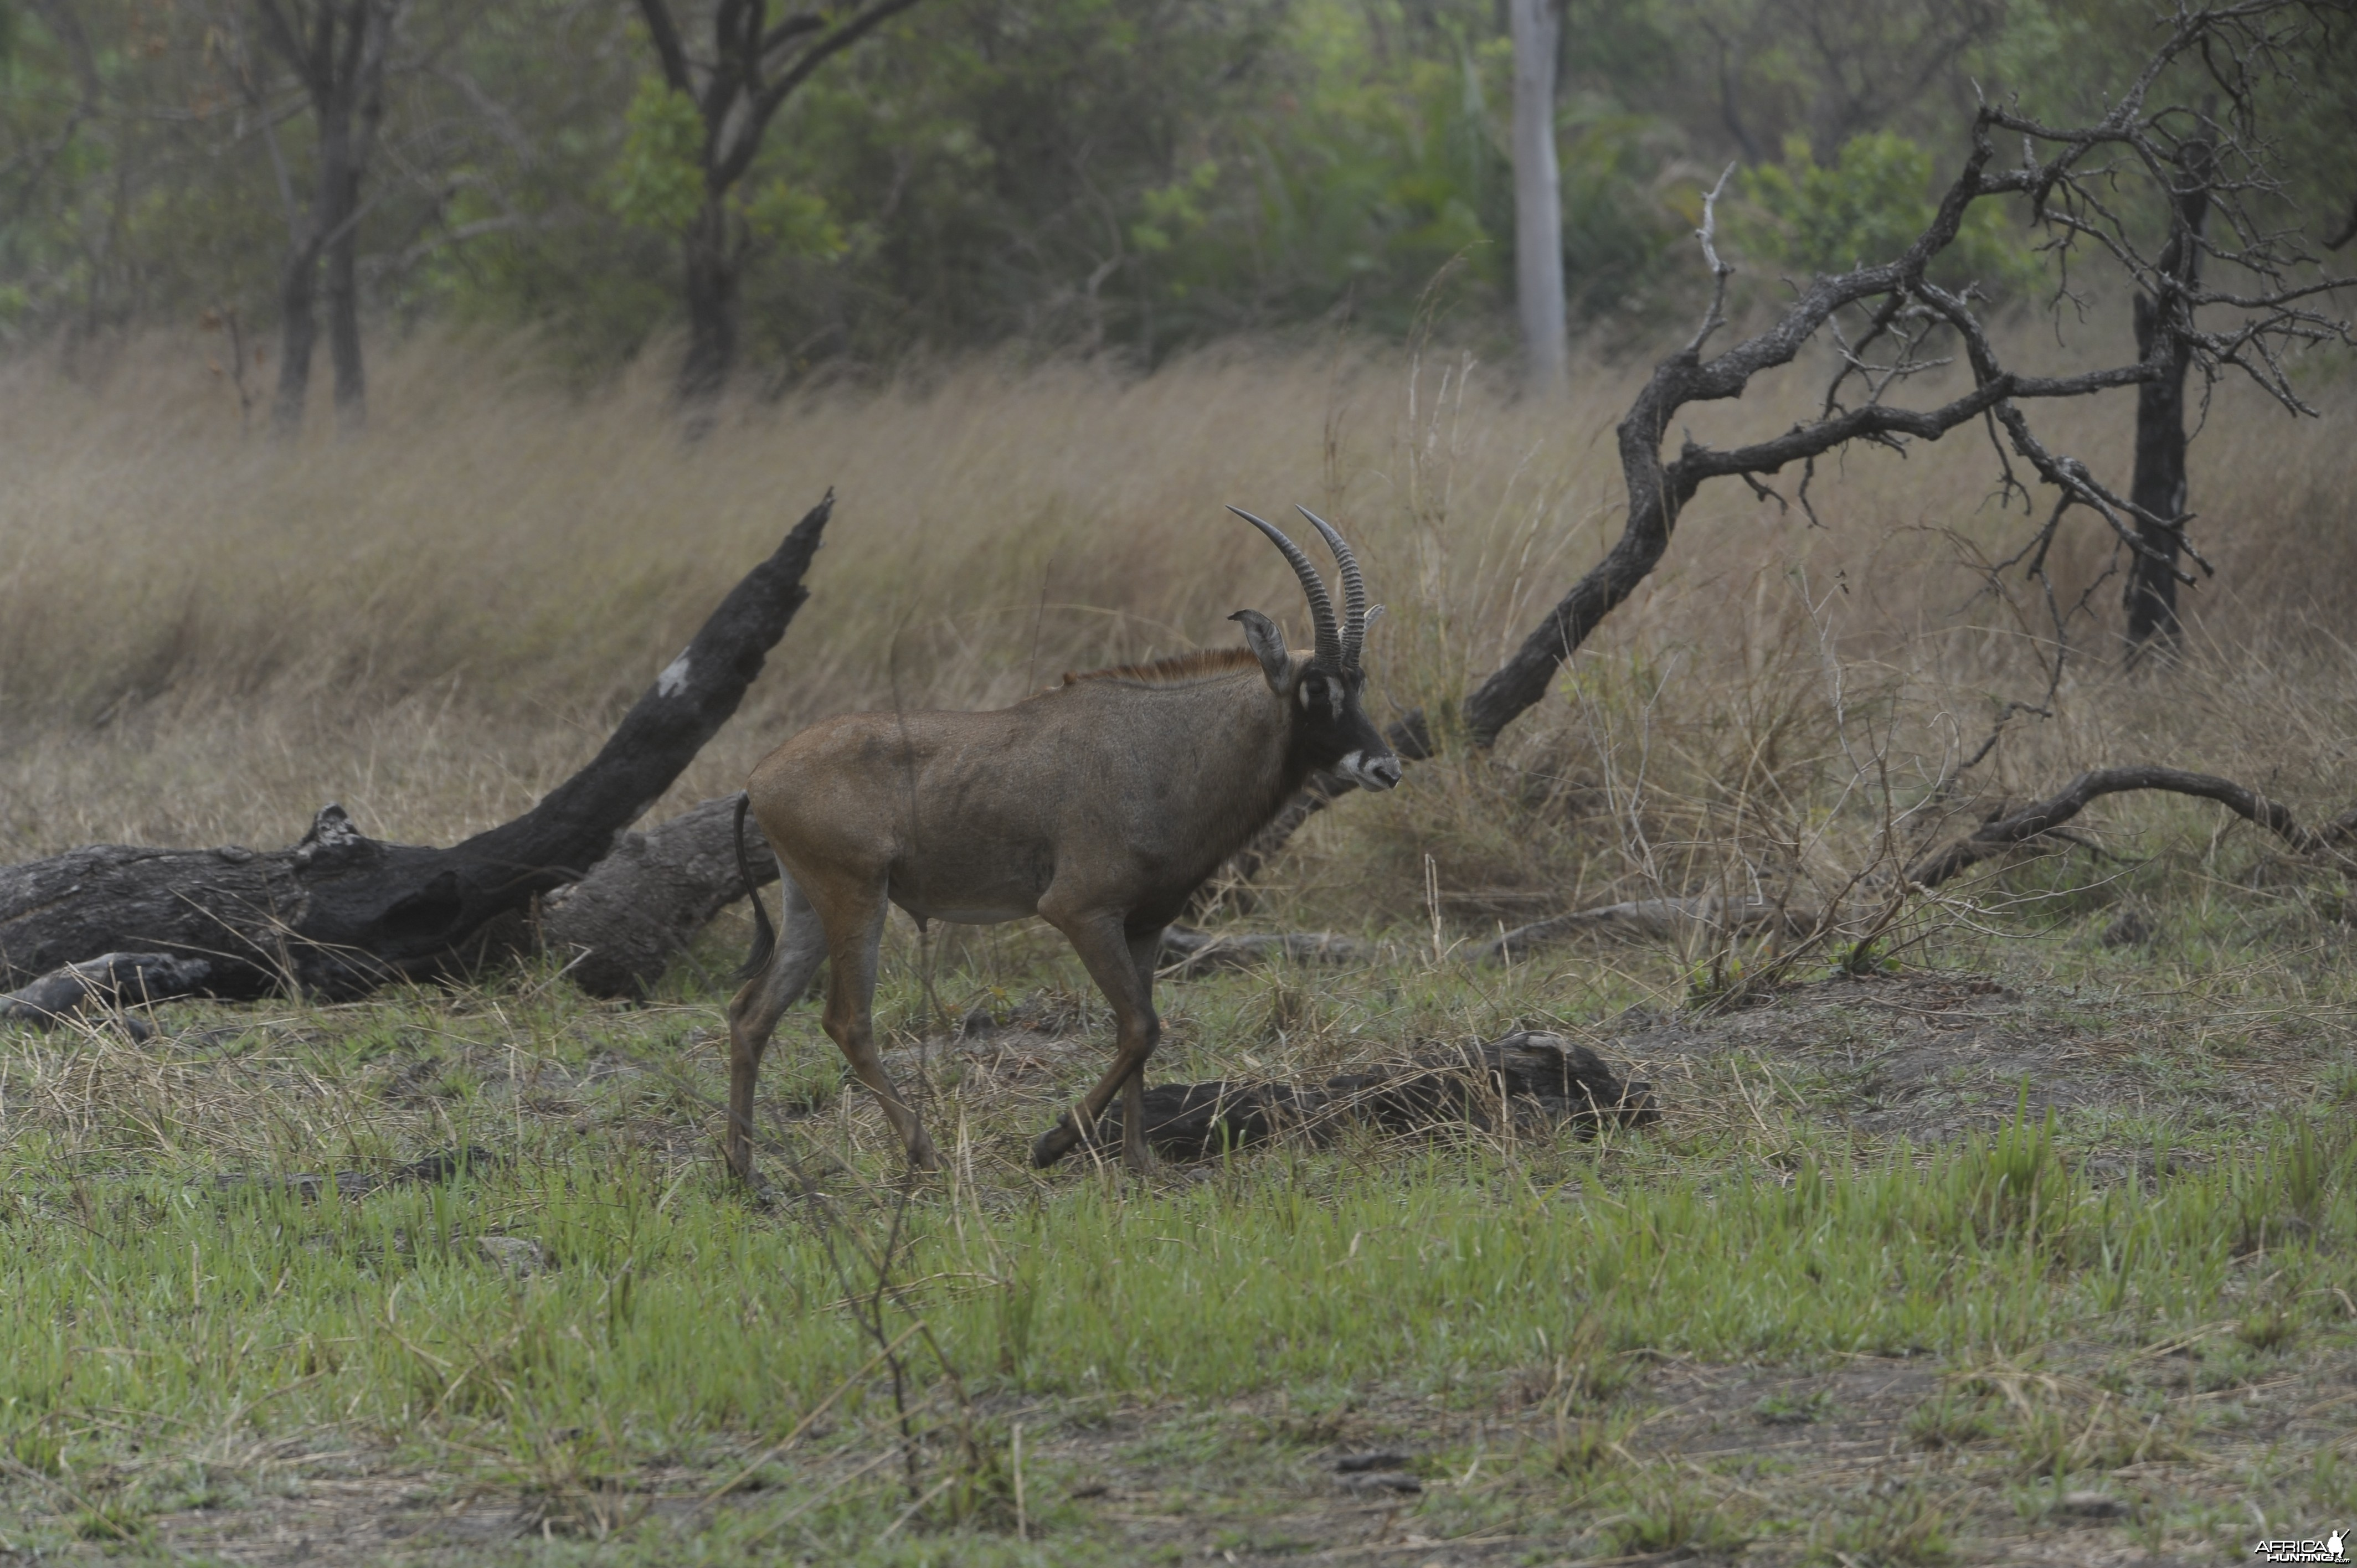 Roan Antelope in Central African Republic